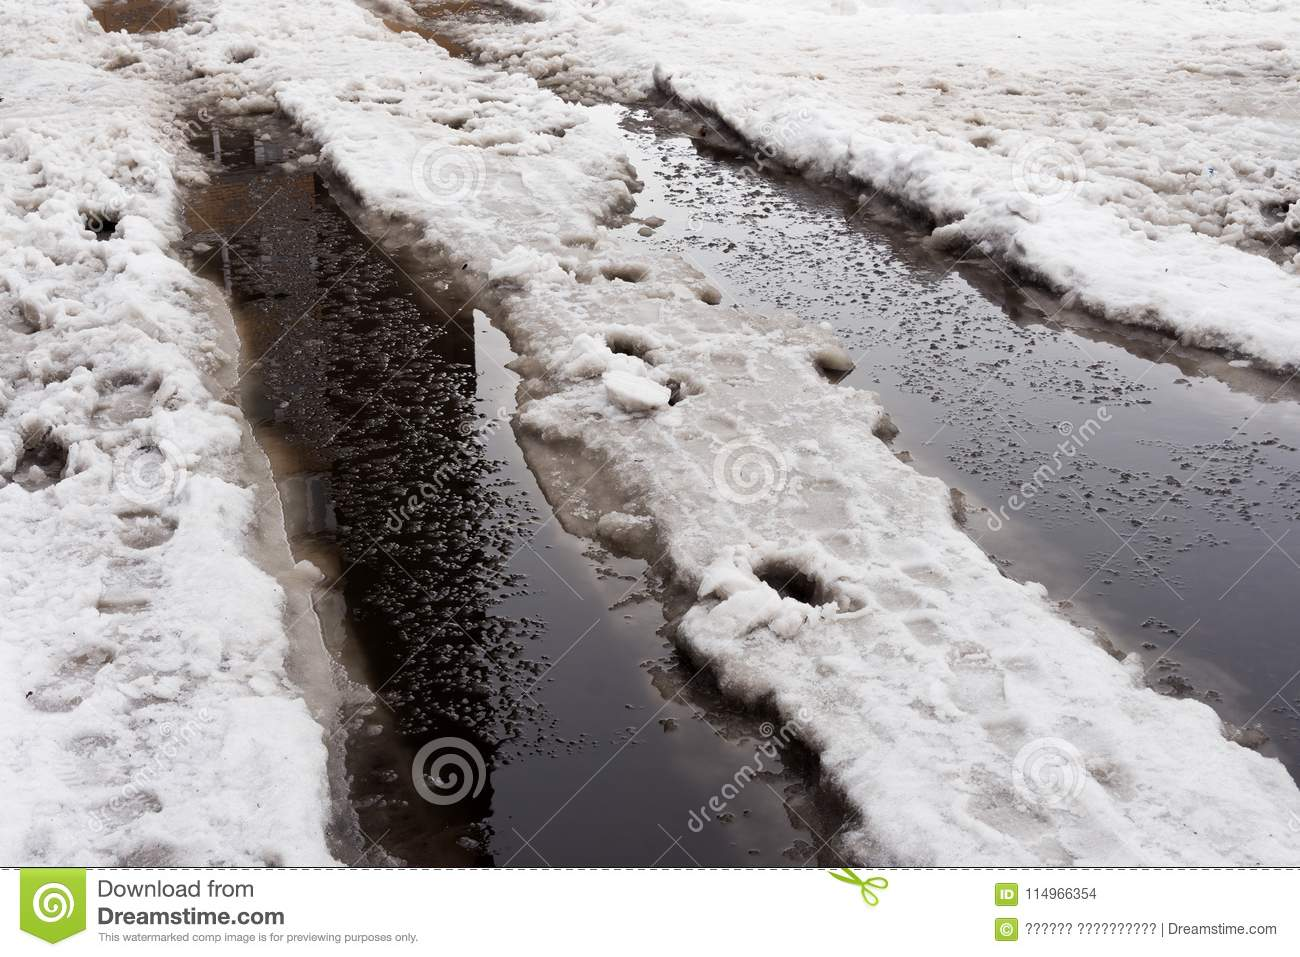 Close-up of huge puddles of snow on city streets.